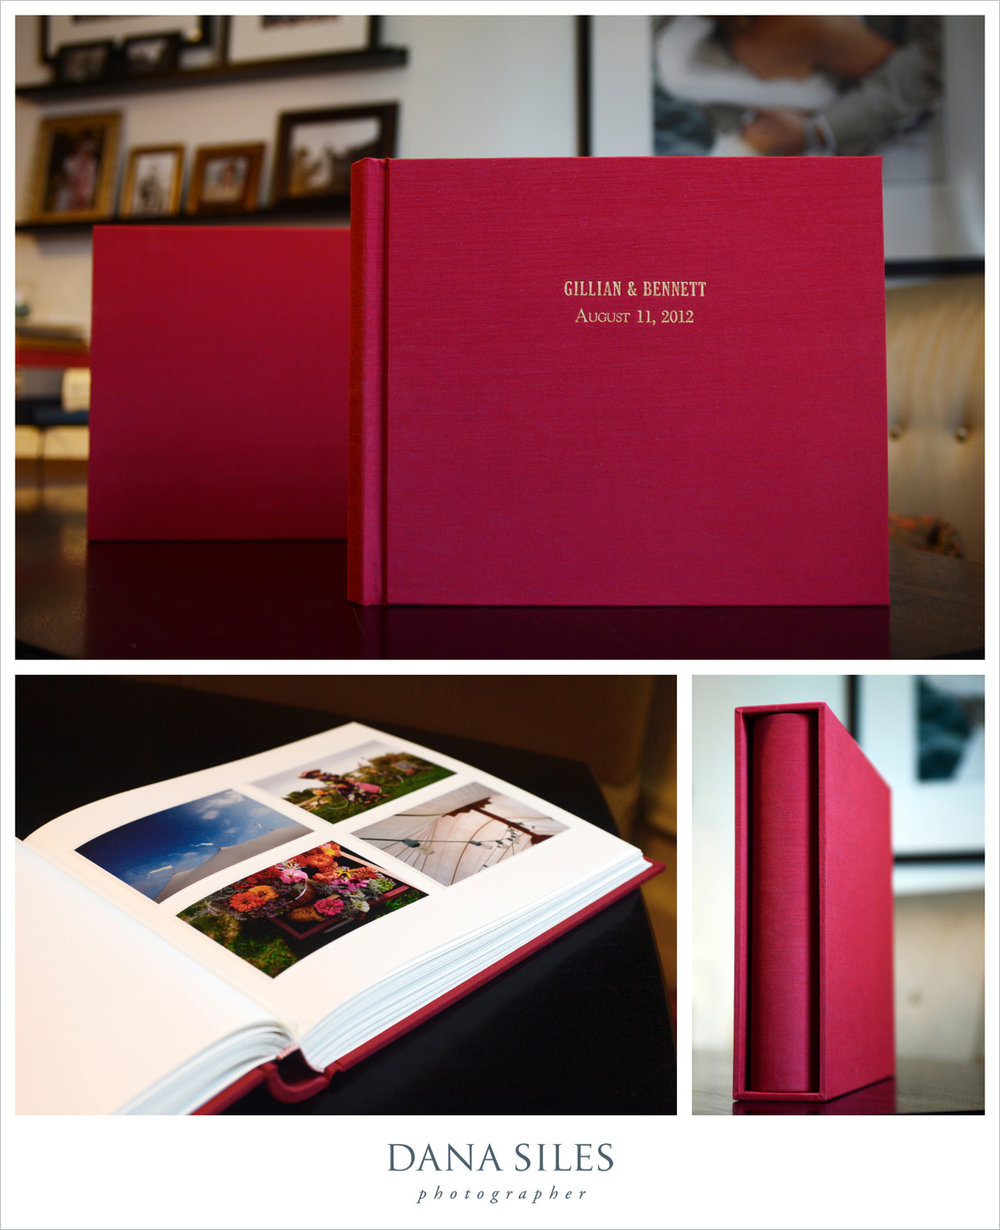 Gillian & Bennett's Custom Album & Slipcase. Burgundy silk. Size 12x14. Gold text engraved onto cover.